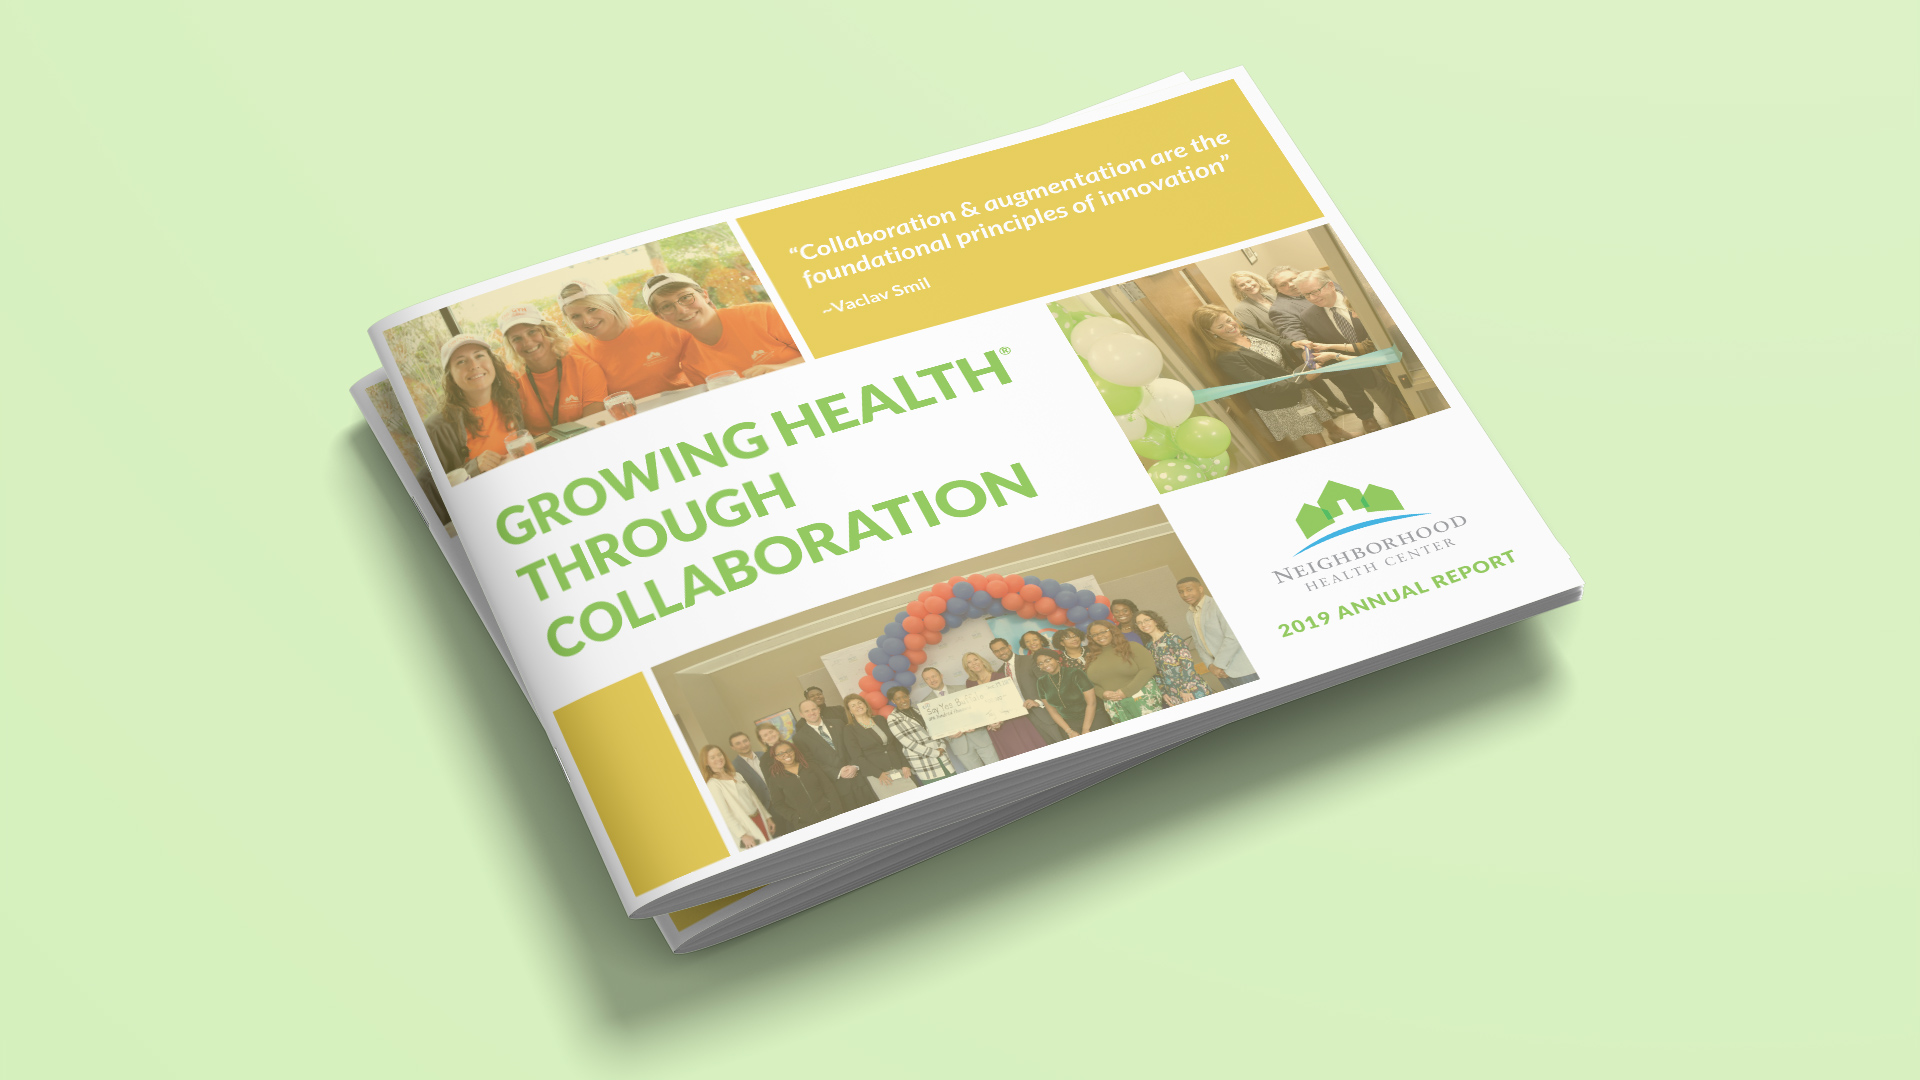 The cover of the NHC annual report took into consideration how to convey the theme of collaboration. OtherWisz's design of the report and layout is consistent, providing a smooth reading experience